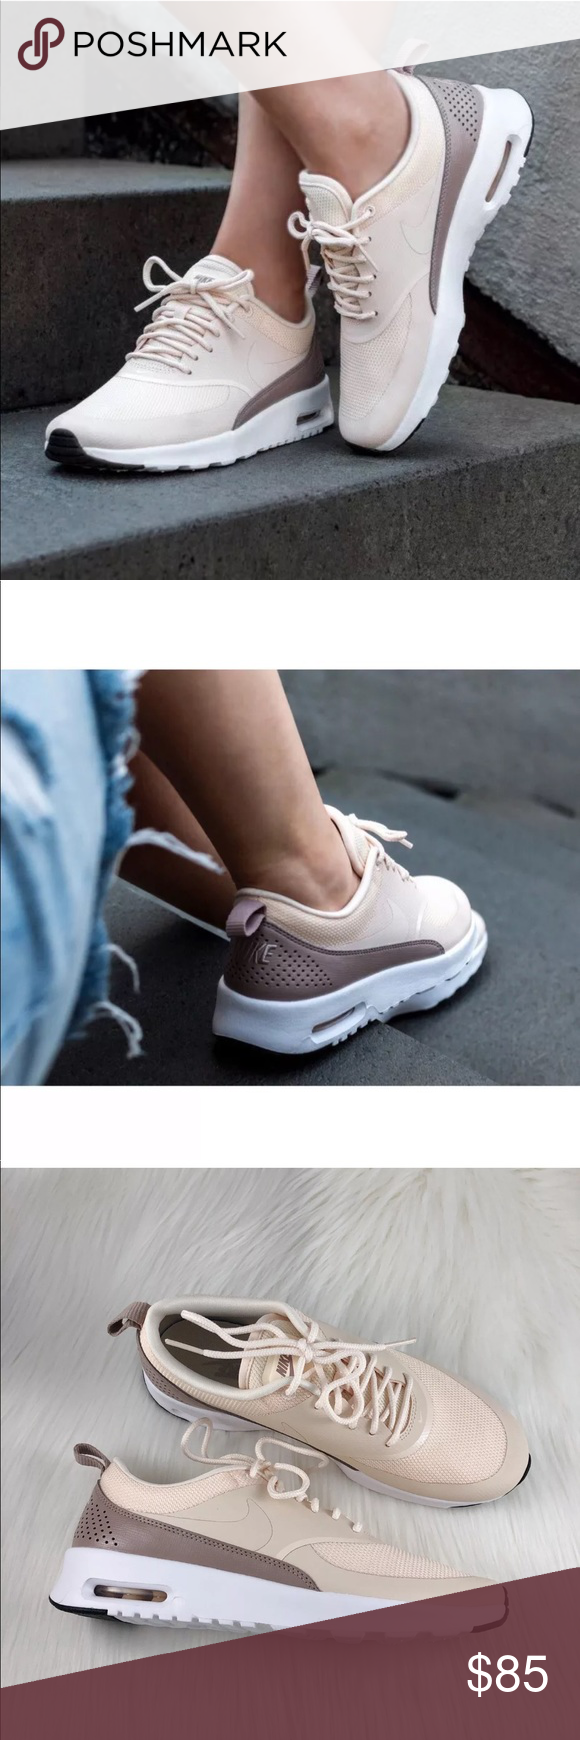 timeless design 3233d f68b3 Women s Nike Air Max Thea Guava Ice Sneakers Women s Nike Air Max Thea  Guava Ice Sneakers